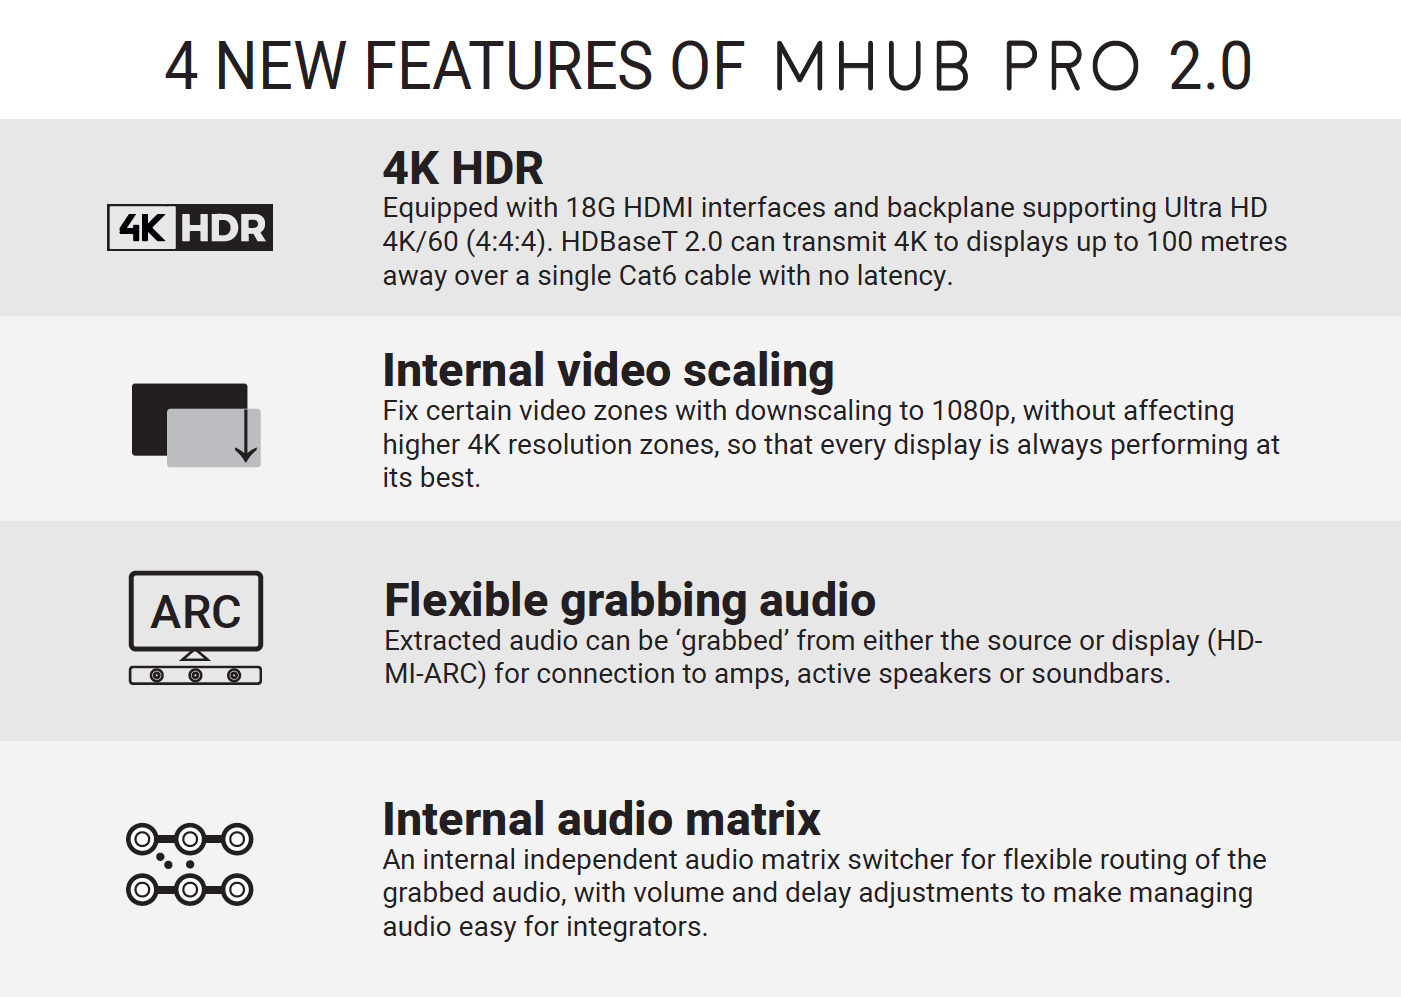 4 new features of MHUB PRO 2.0